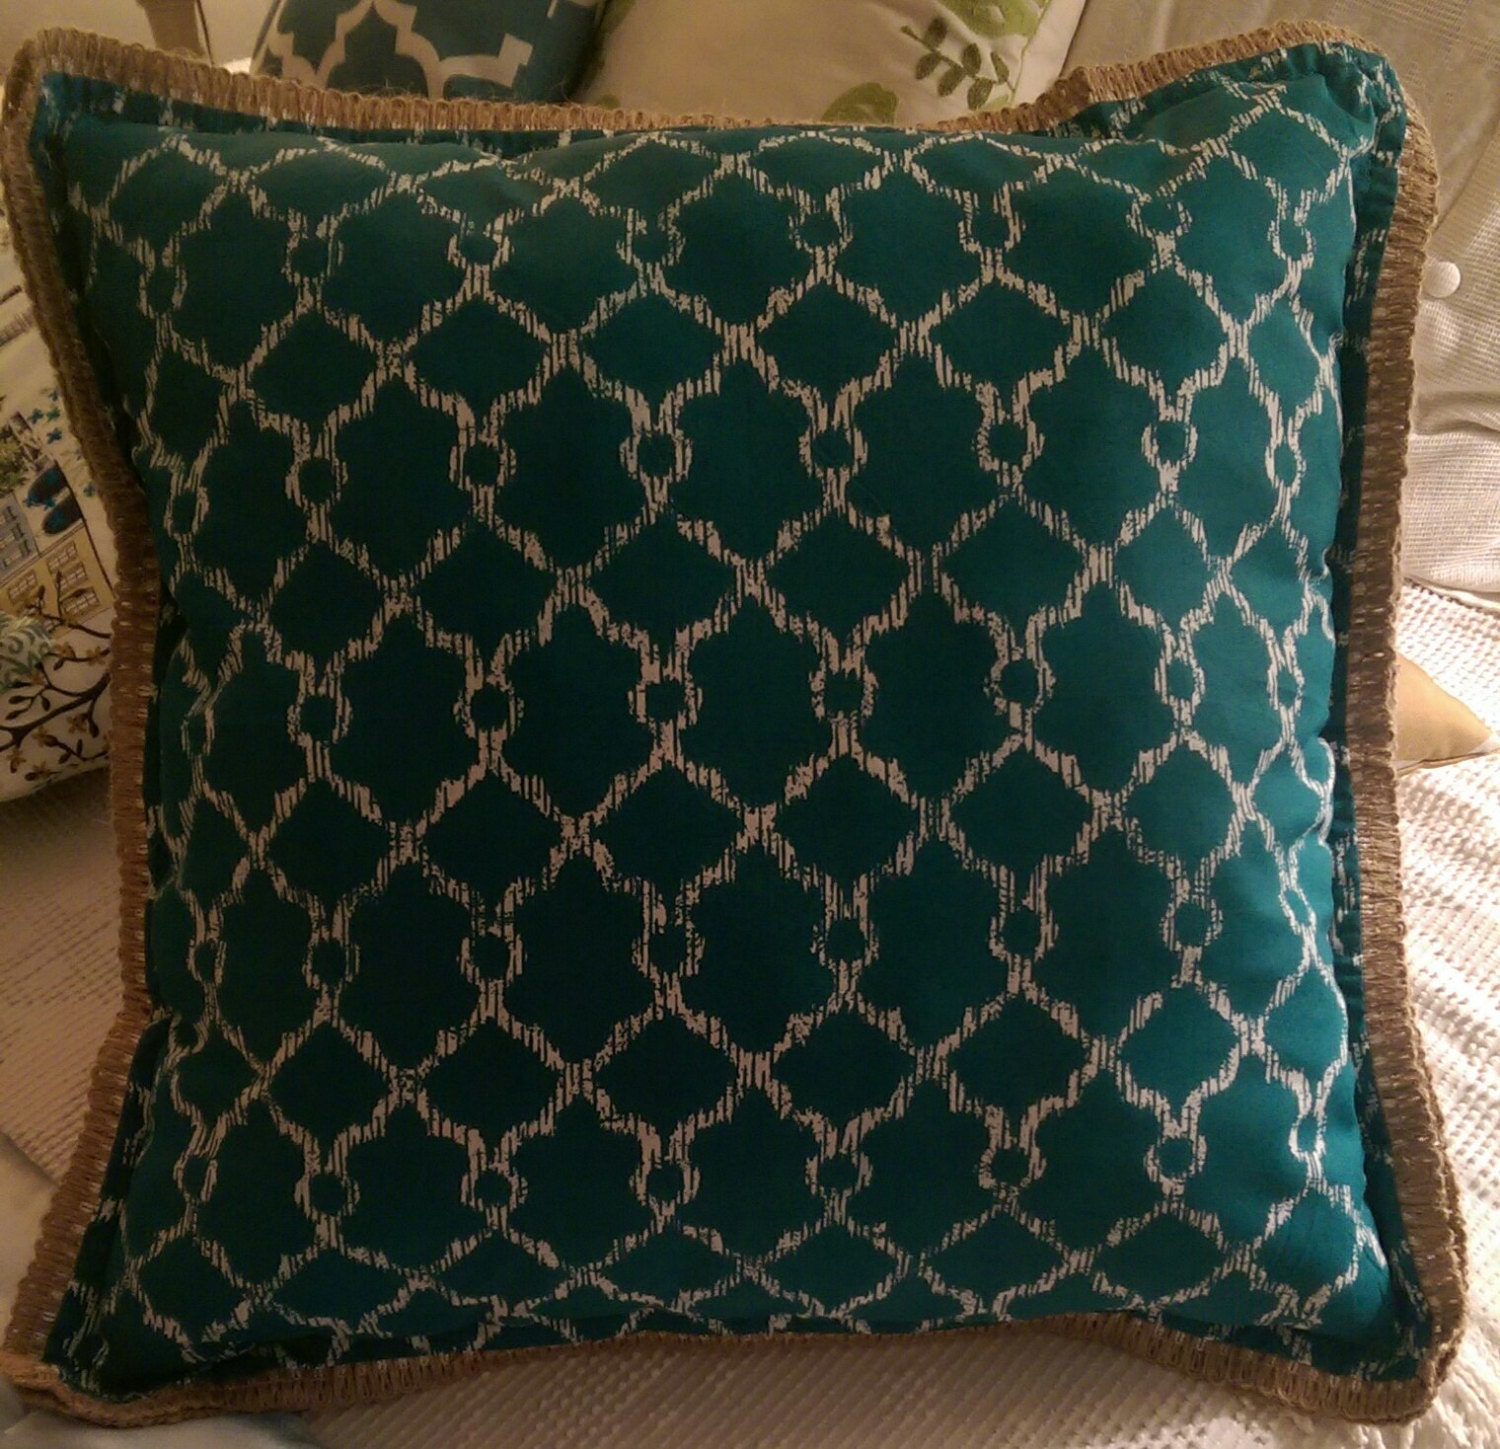 Throw Pillow Trim : Teal Throw Pillow with Burlap Trim by EschryRychCreations on Etsy